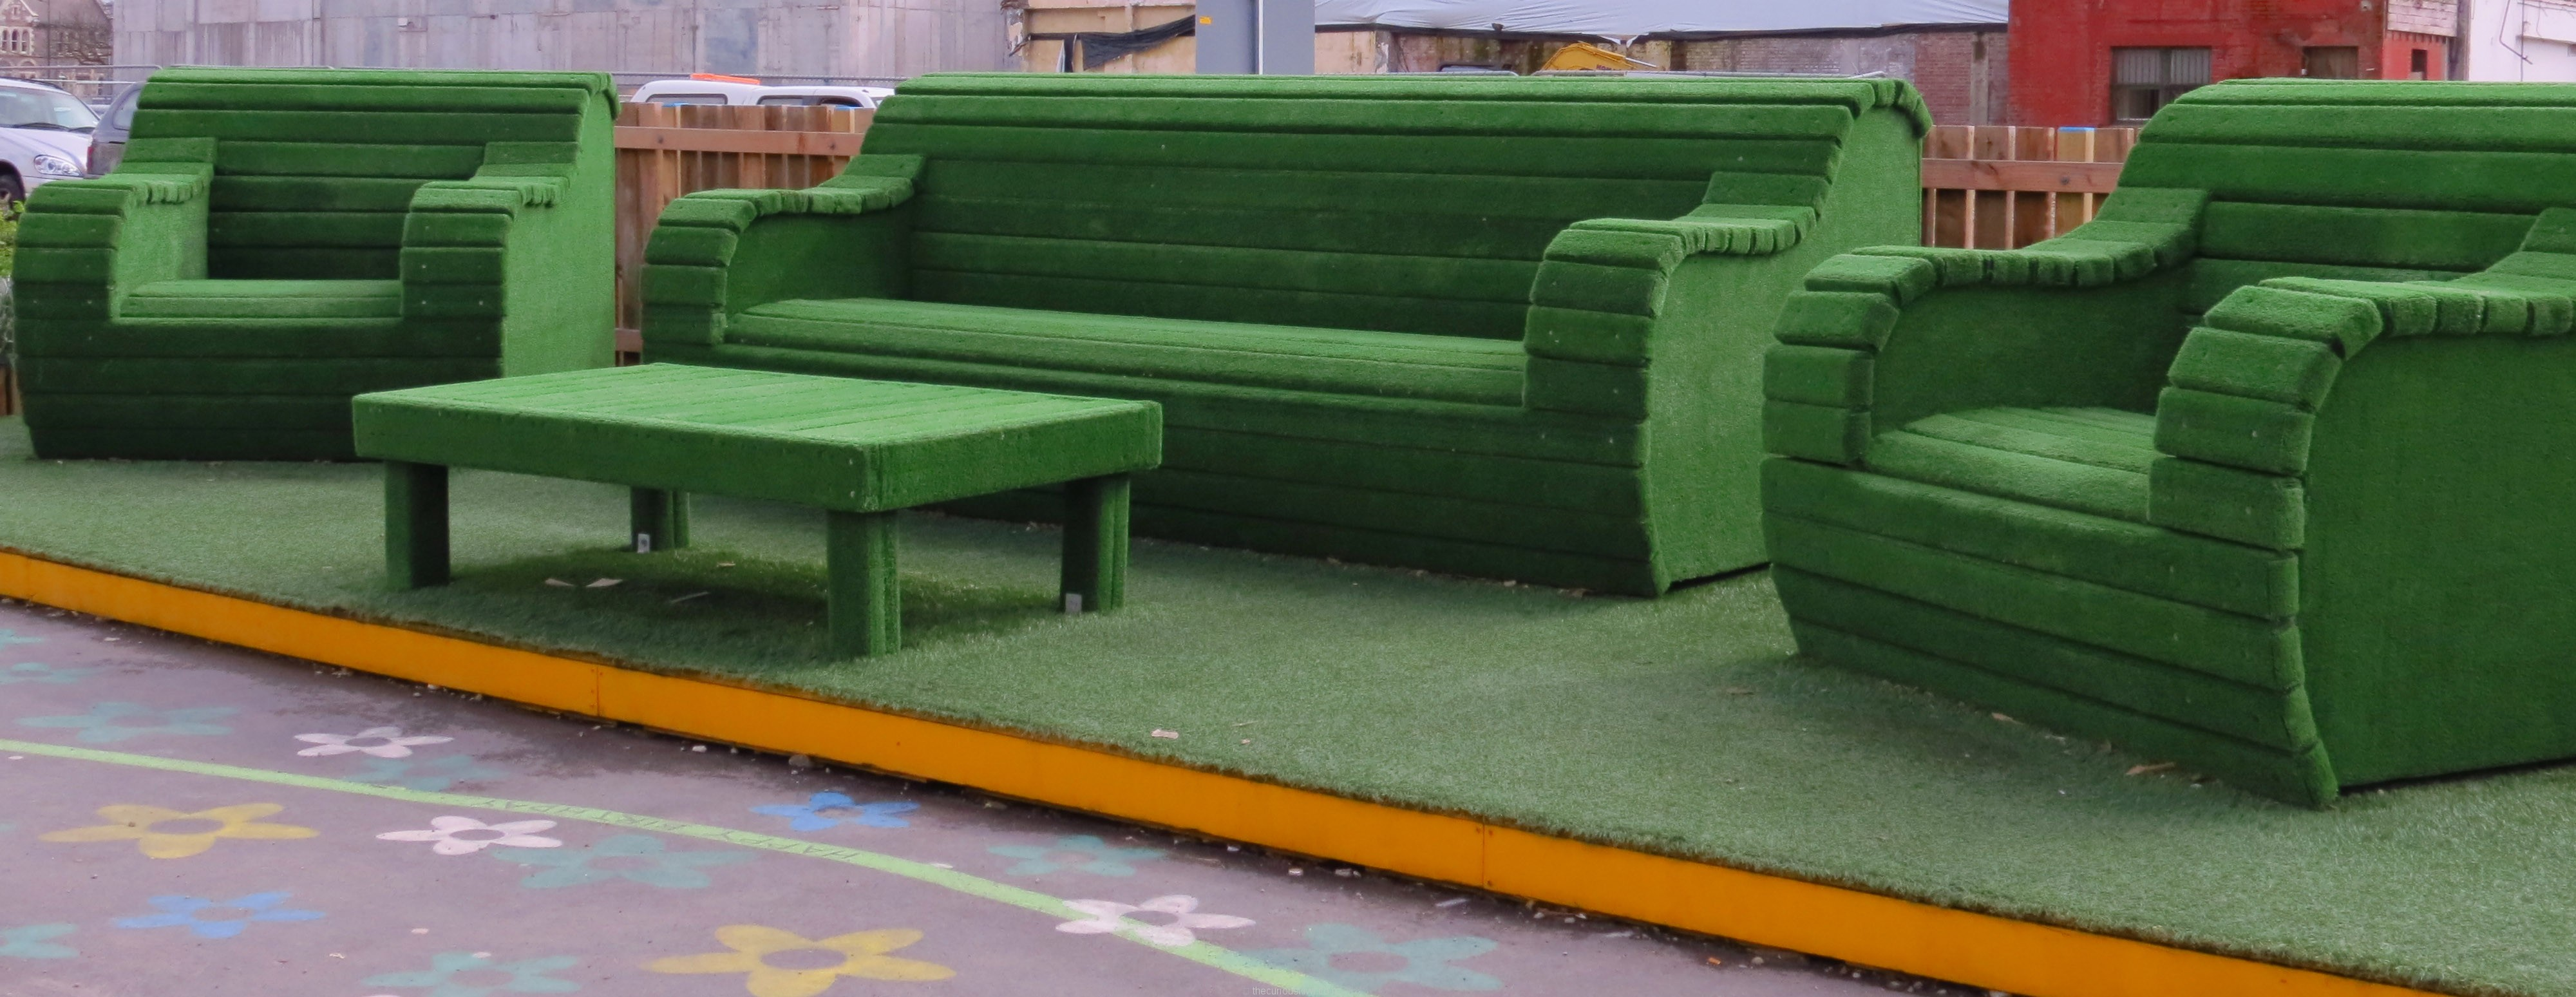 The big green couch and chairs